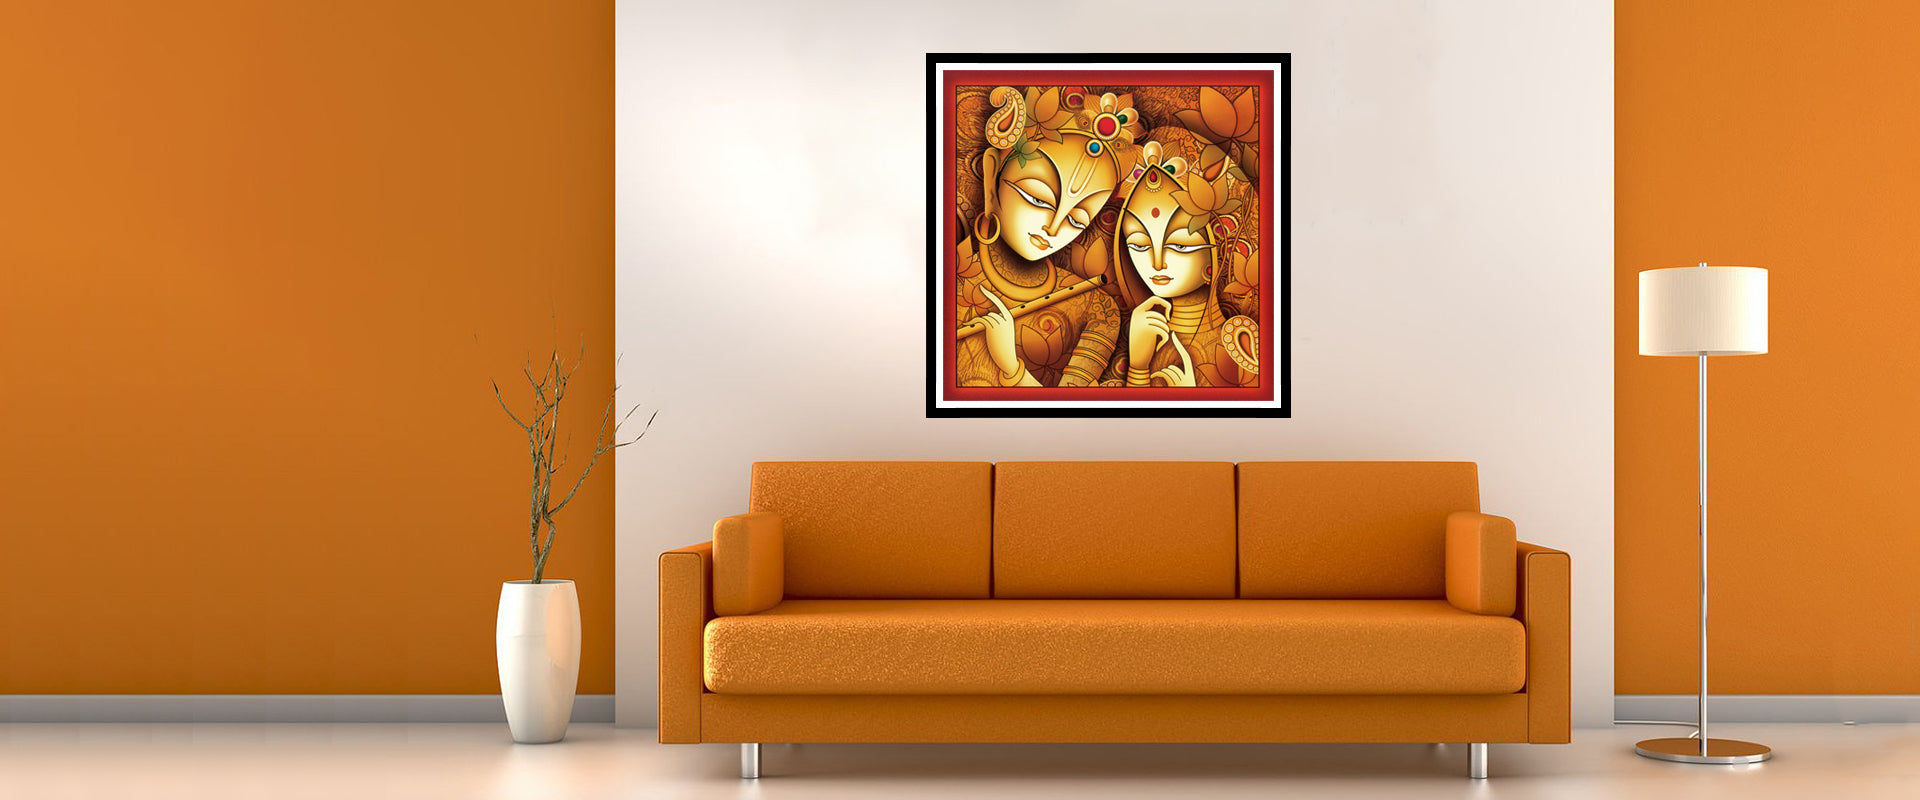 Housewarming Gifts | Buy Posters, Frames, Canvas, Digital Art & Large Size Prints